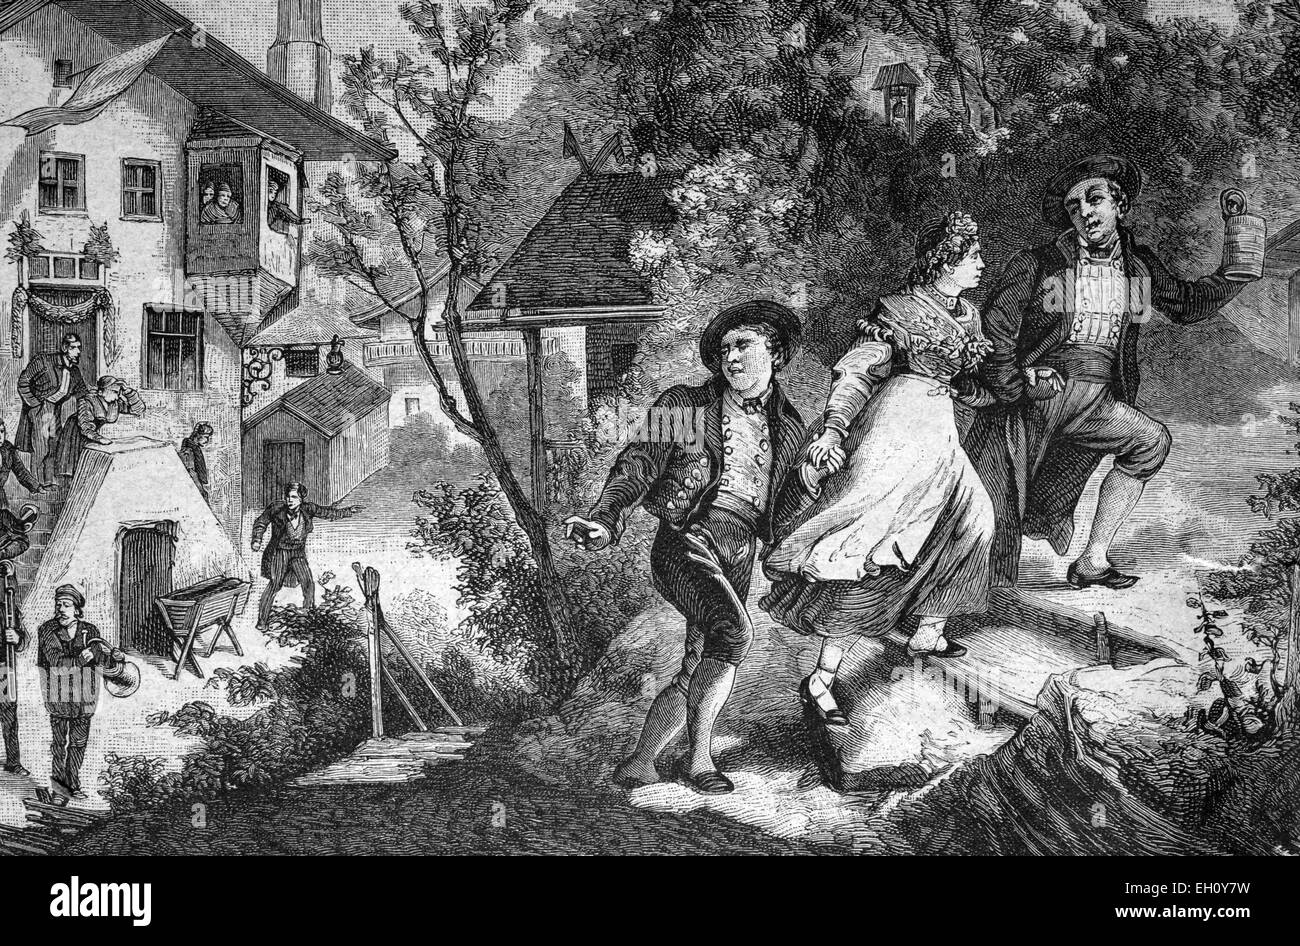 Traditional abduction of a bride in Upper Bavaria, Germany, historical illustration, circa 1886 - Stock Image